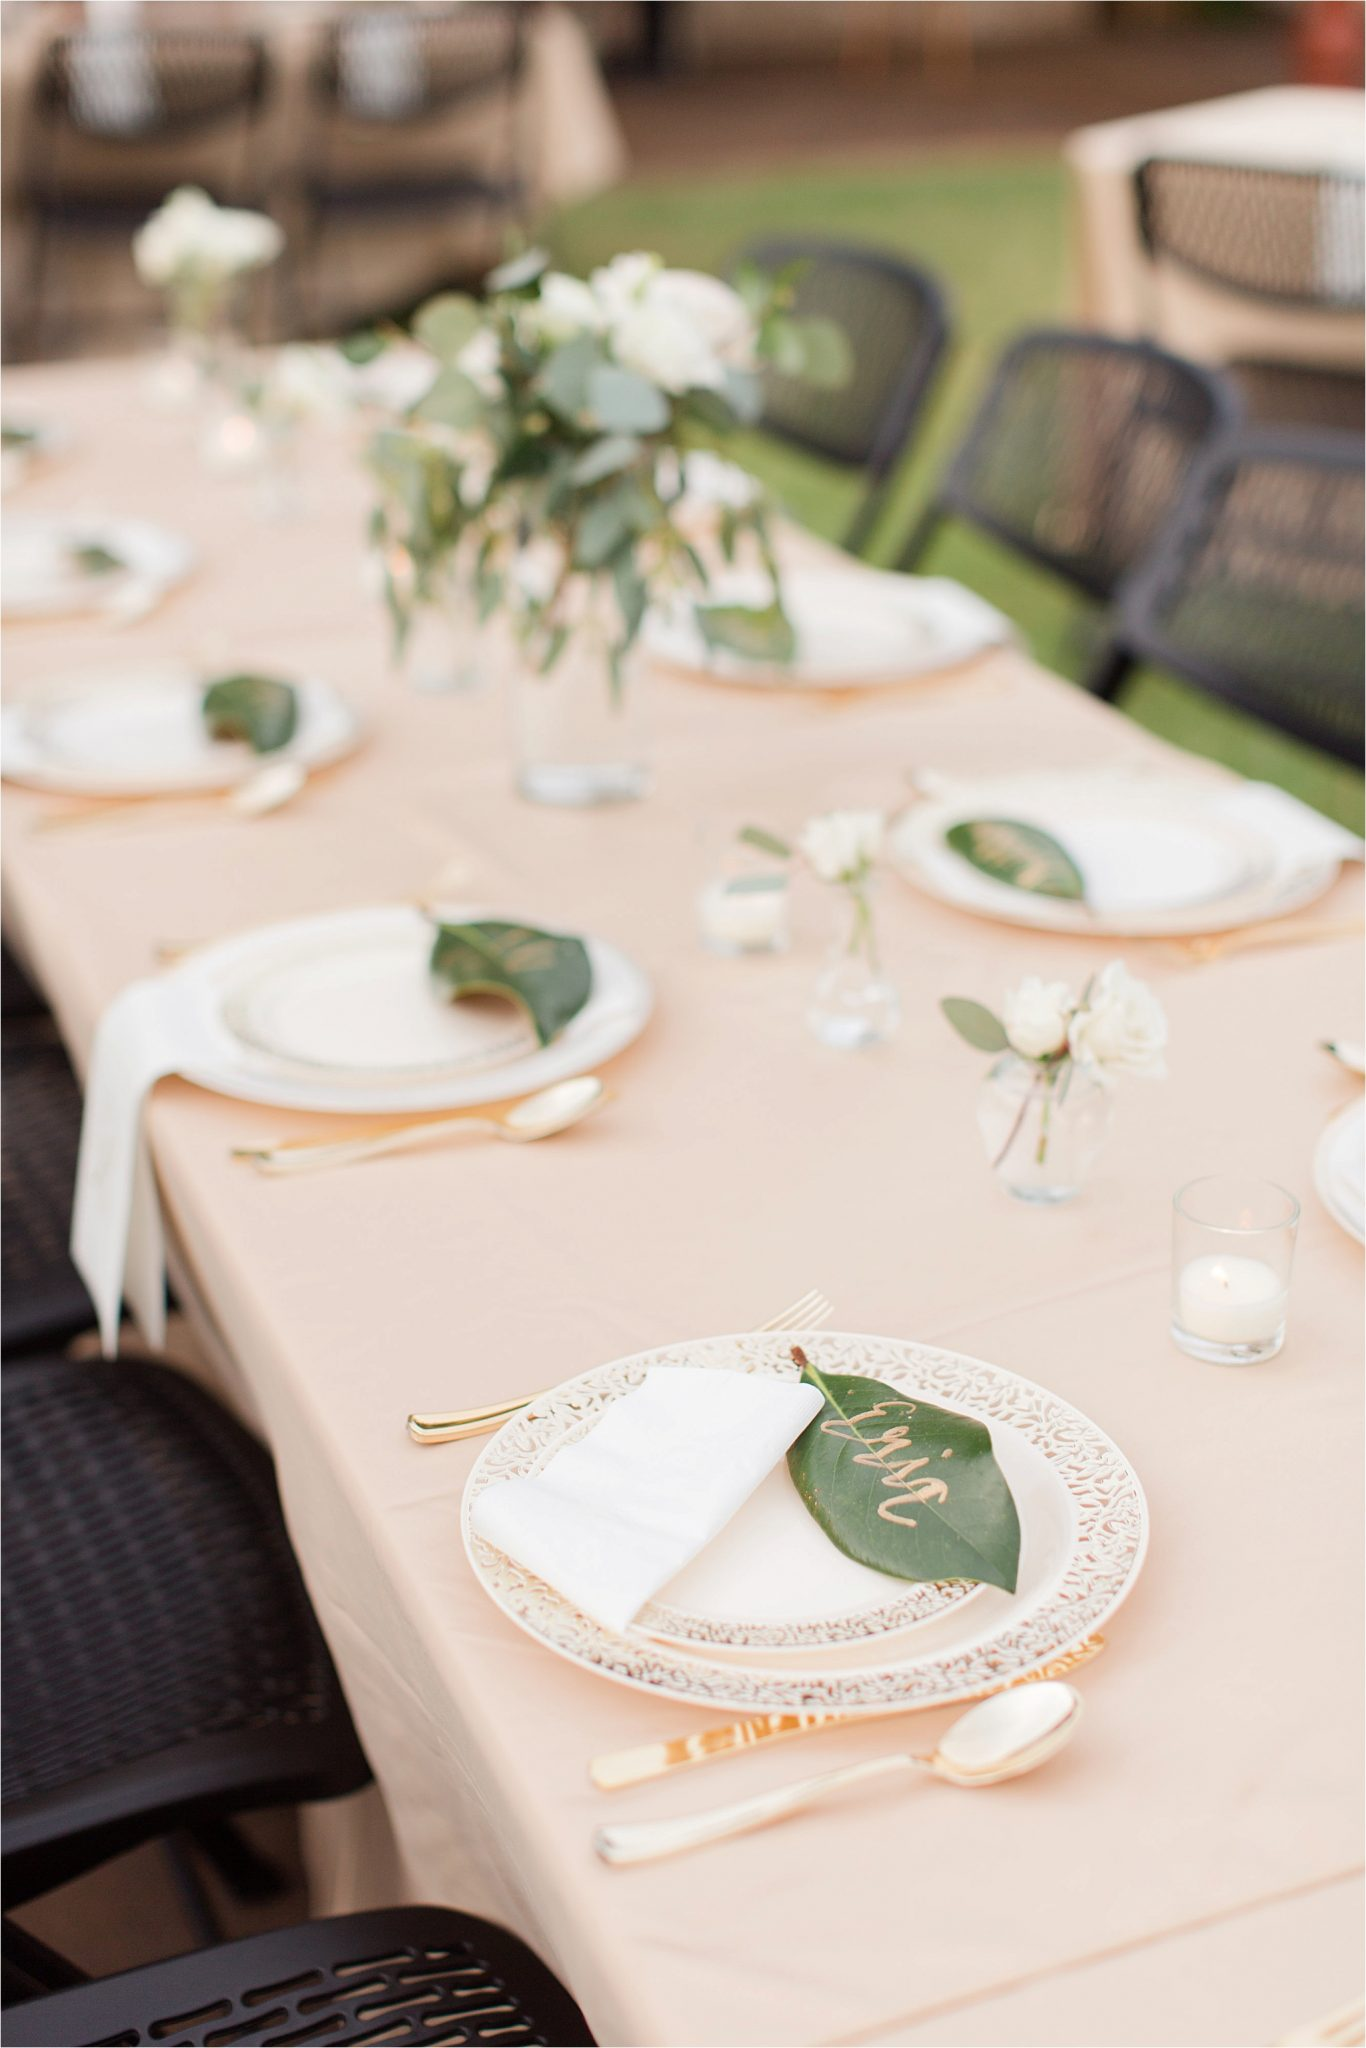 wedding-reception-place-setting-groom-champagne-blushes-nuetrals-white-roses-magnolia-leaves-gold-writing